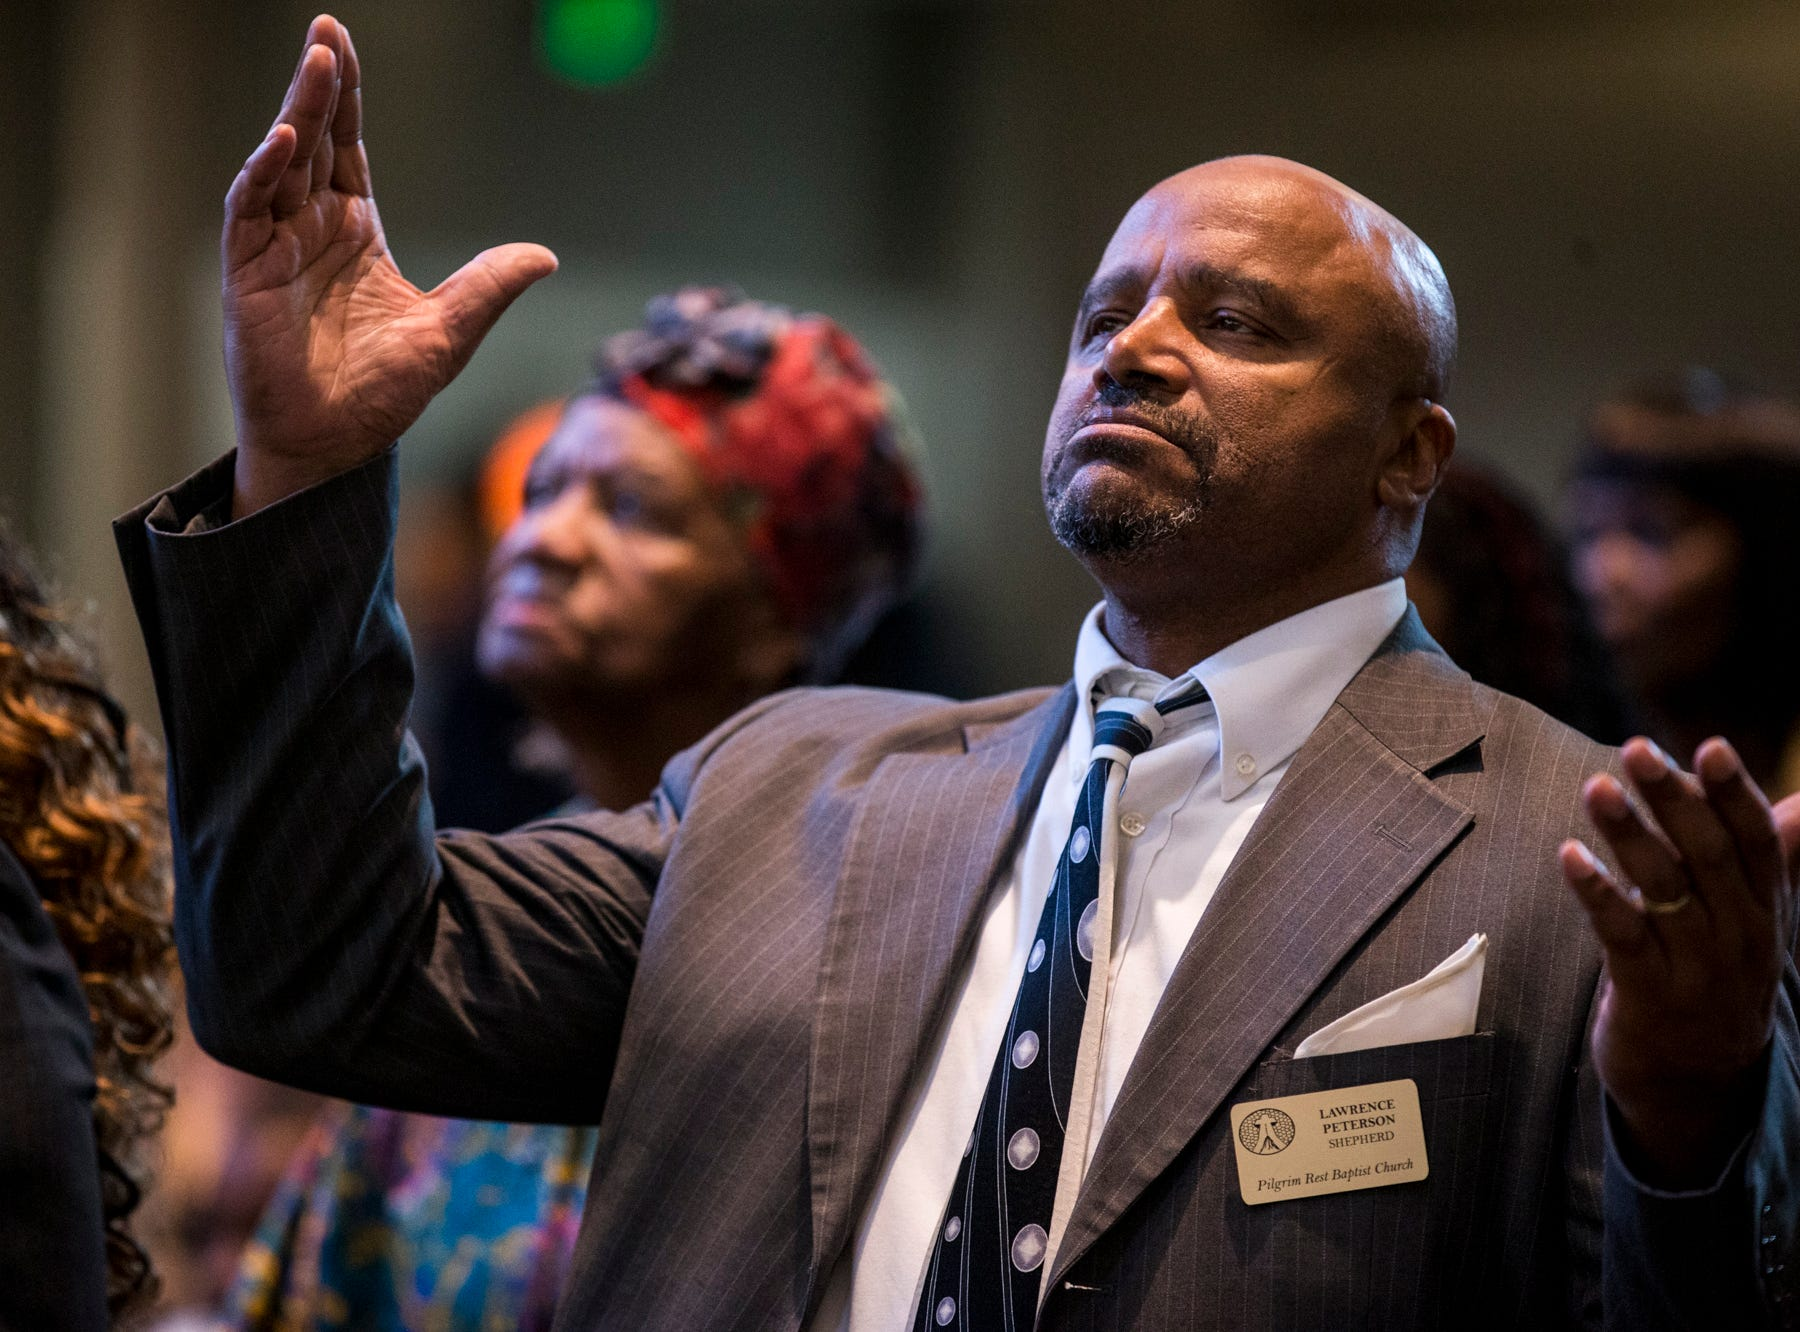 Lawrence Peterson raises his arms during the 7:30 a.m. service on Feb. 24, 2019, at Pilgrim Rest Baptist Church in Phoenix. Pastor Terry Mackey was appointed to replace the late Bishop Alexis Thomas.